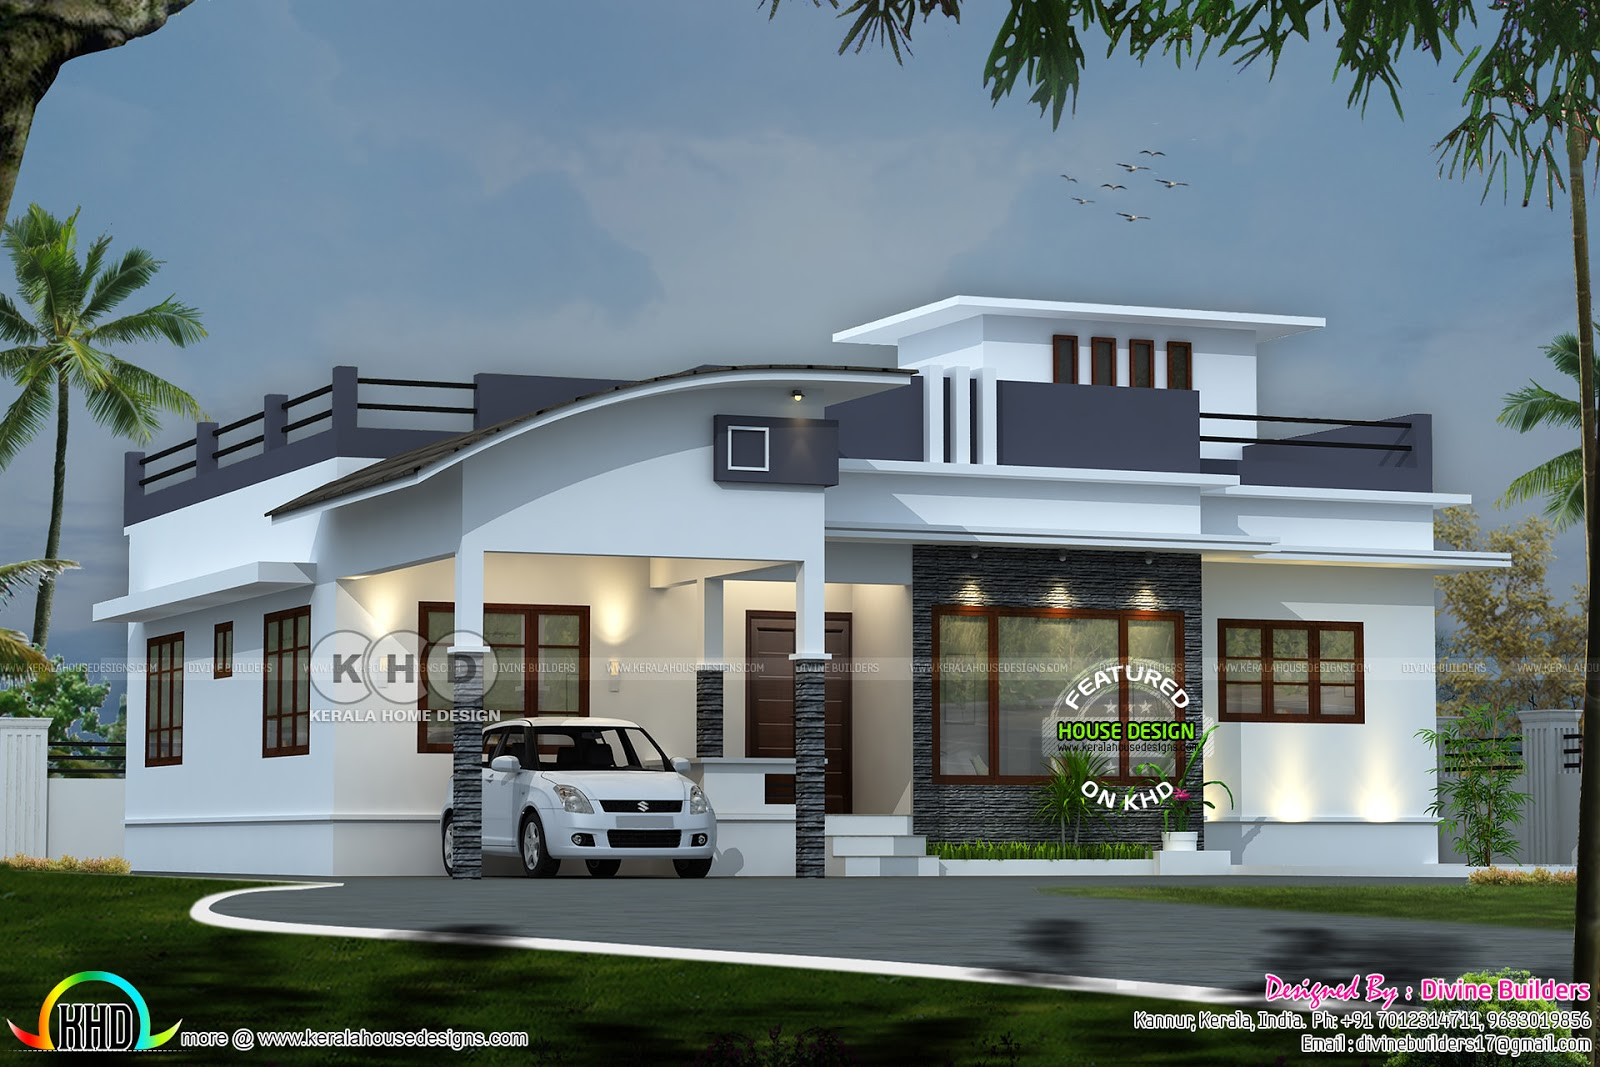 house designs of kerala with in 25 lakh with Home Plan Design 100 Sq Ft on Home Design 800 Sq Ft also Article4790297 additionally Gallery besides Gs Arch Creations as well 1062 Sqft 3 Bedroom Low Budget House.